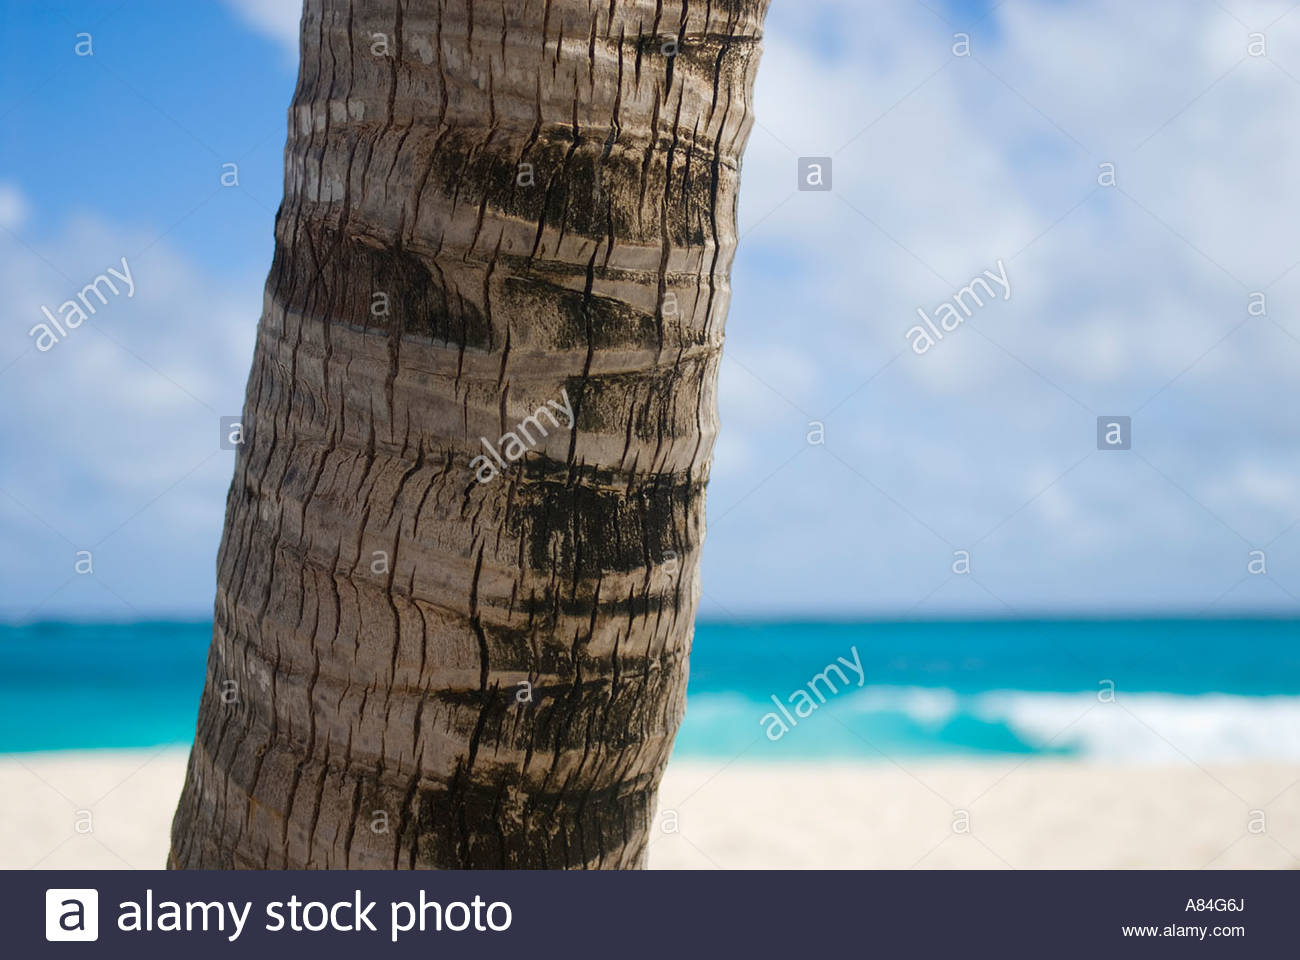 Close up of Palm tree trunk, Foul Bay beach, Barbados, Eastern Caribbean - Stock Image